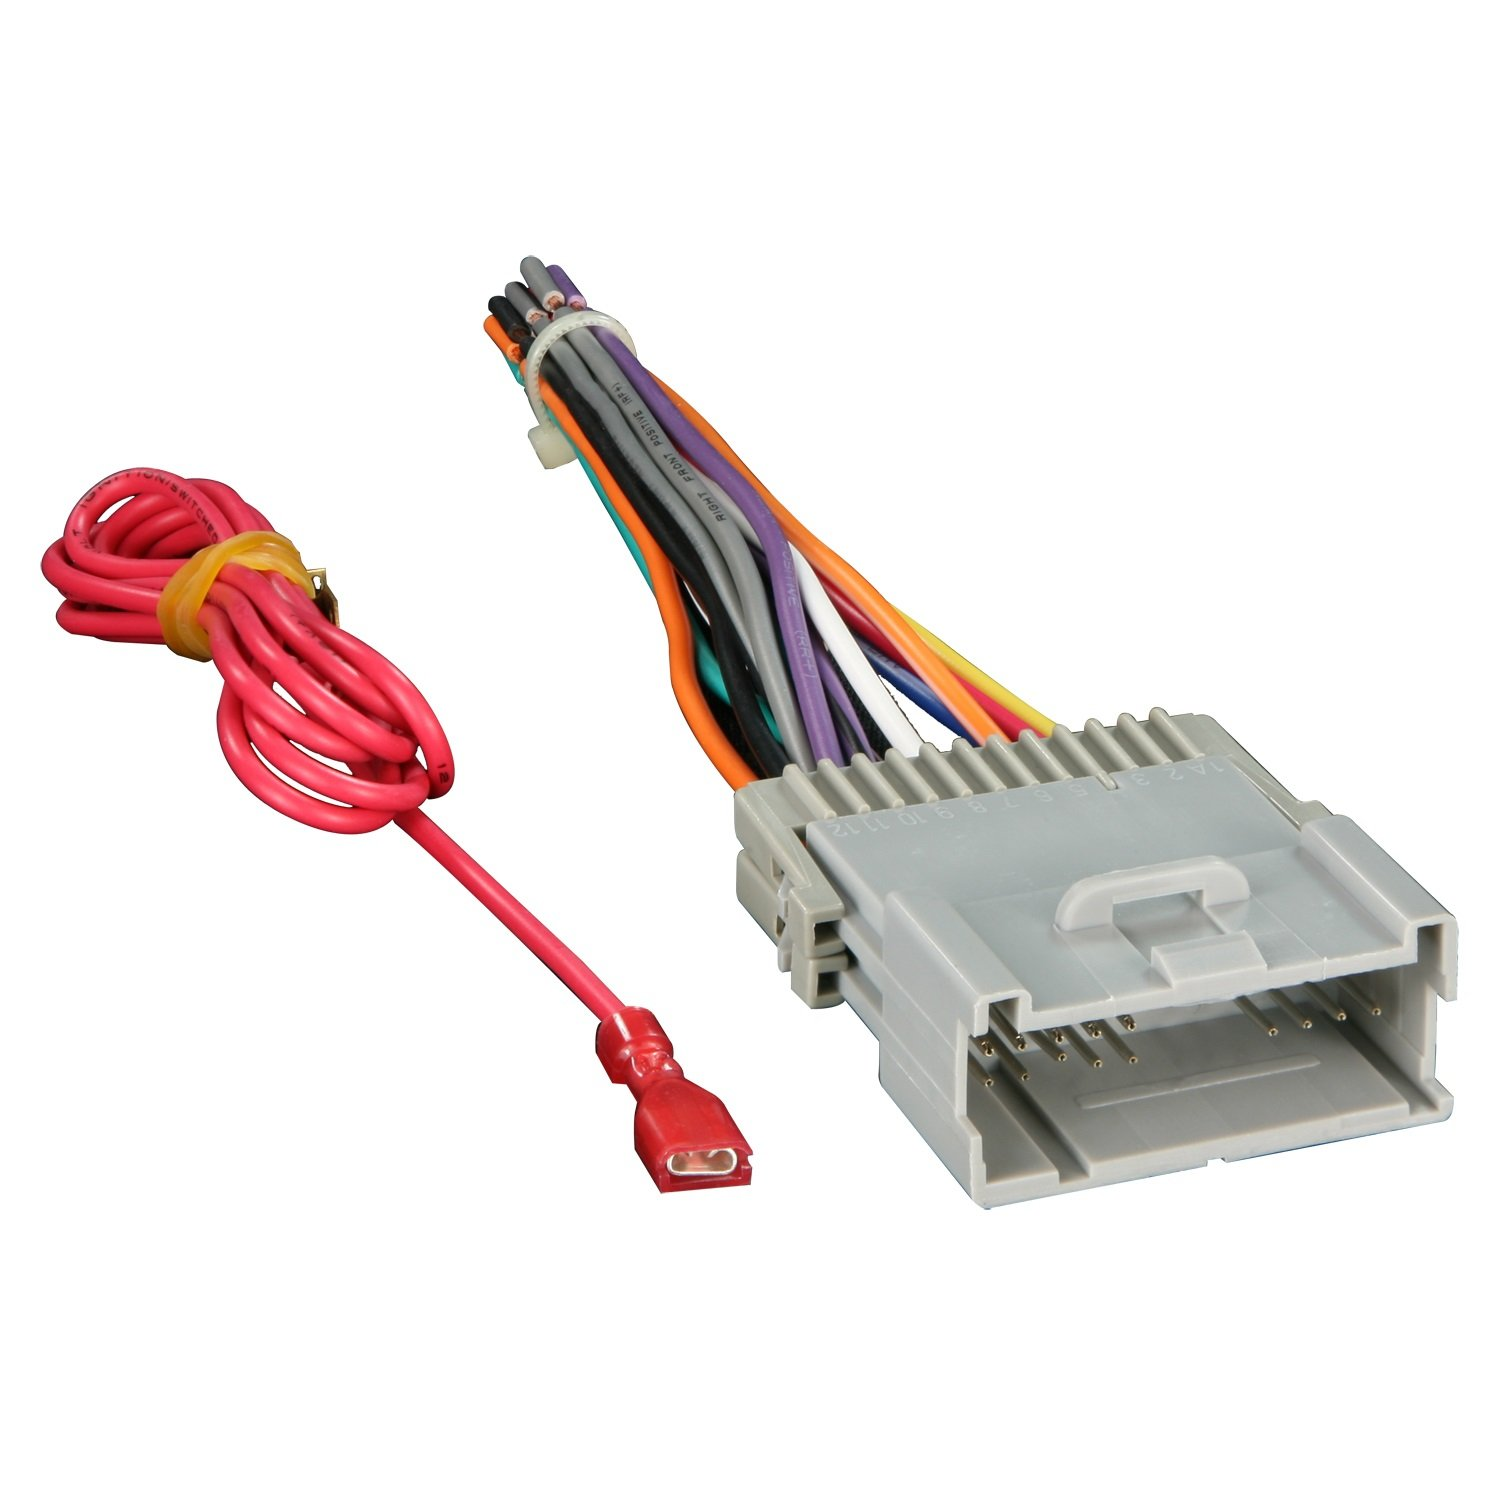 61eewxp9orL._SL1500_ amazon com metra 70 2003 radio wiring harness for gm 98 08 metra 70-1858 receiver wiring harness at creativeand.co